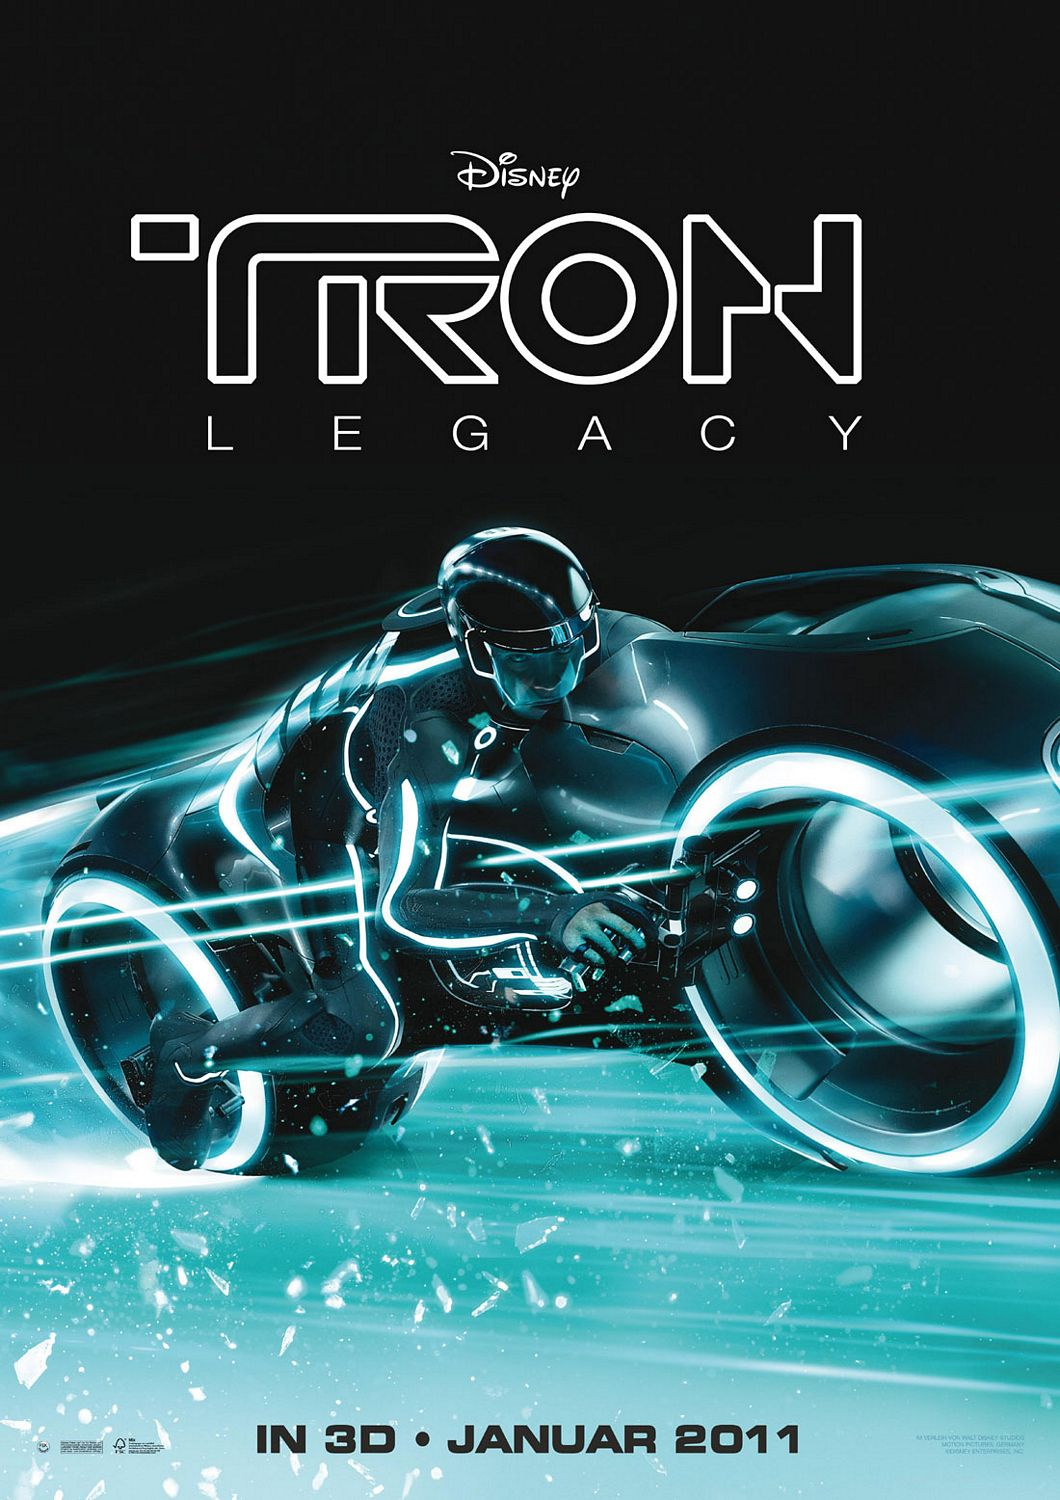 The Blot Says Tron Legacy One Sheet Movie Posters